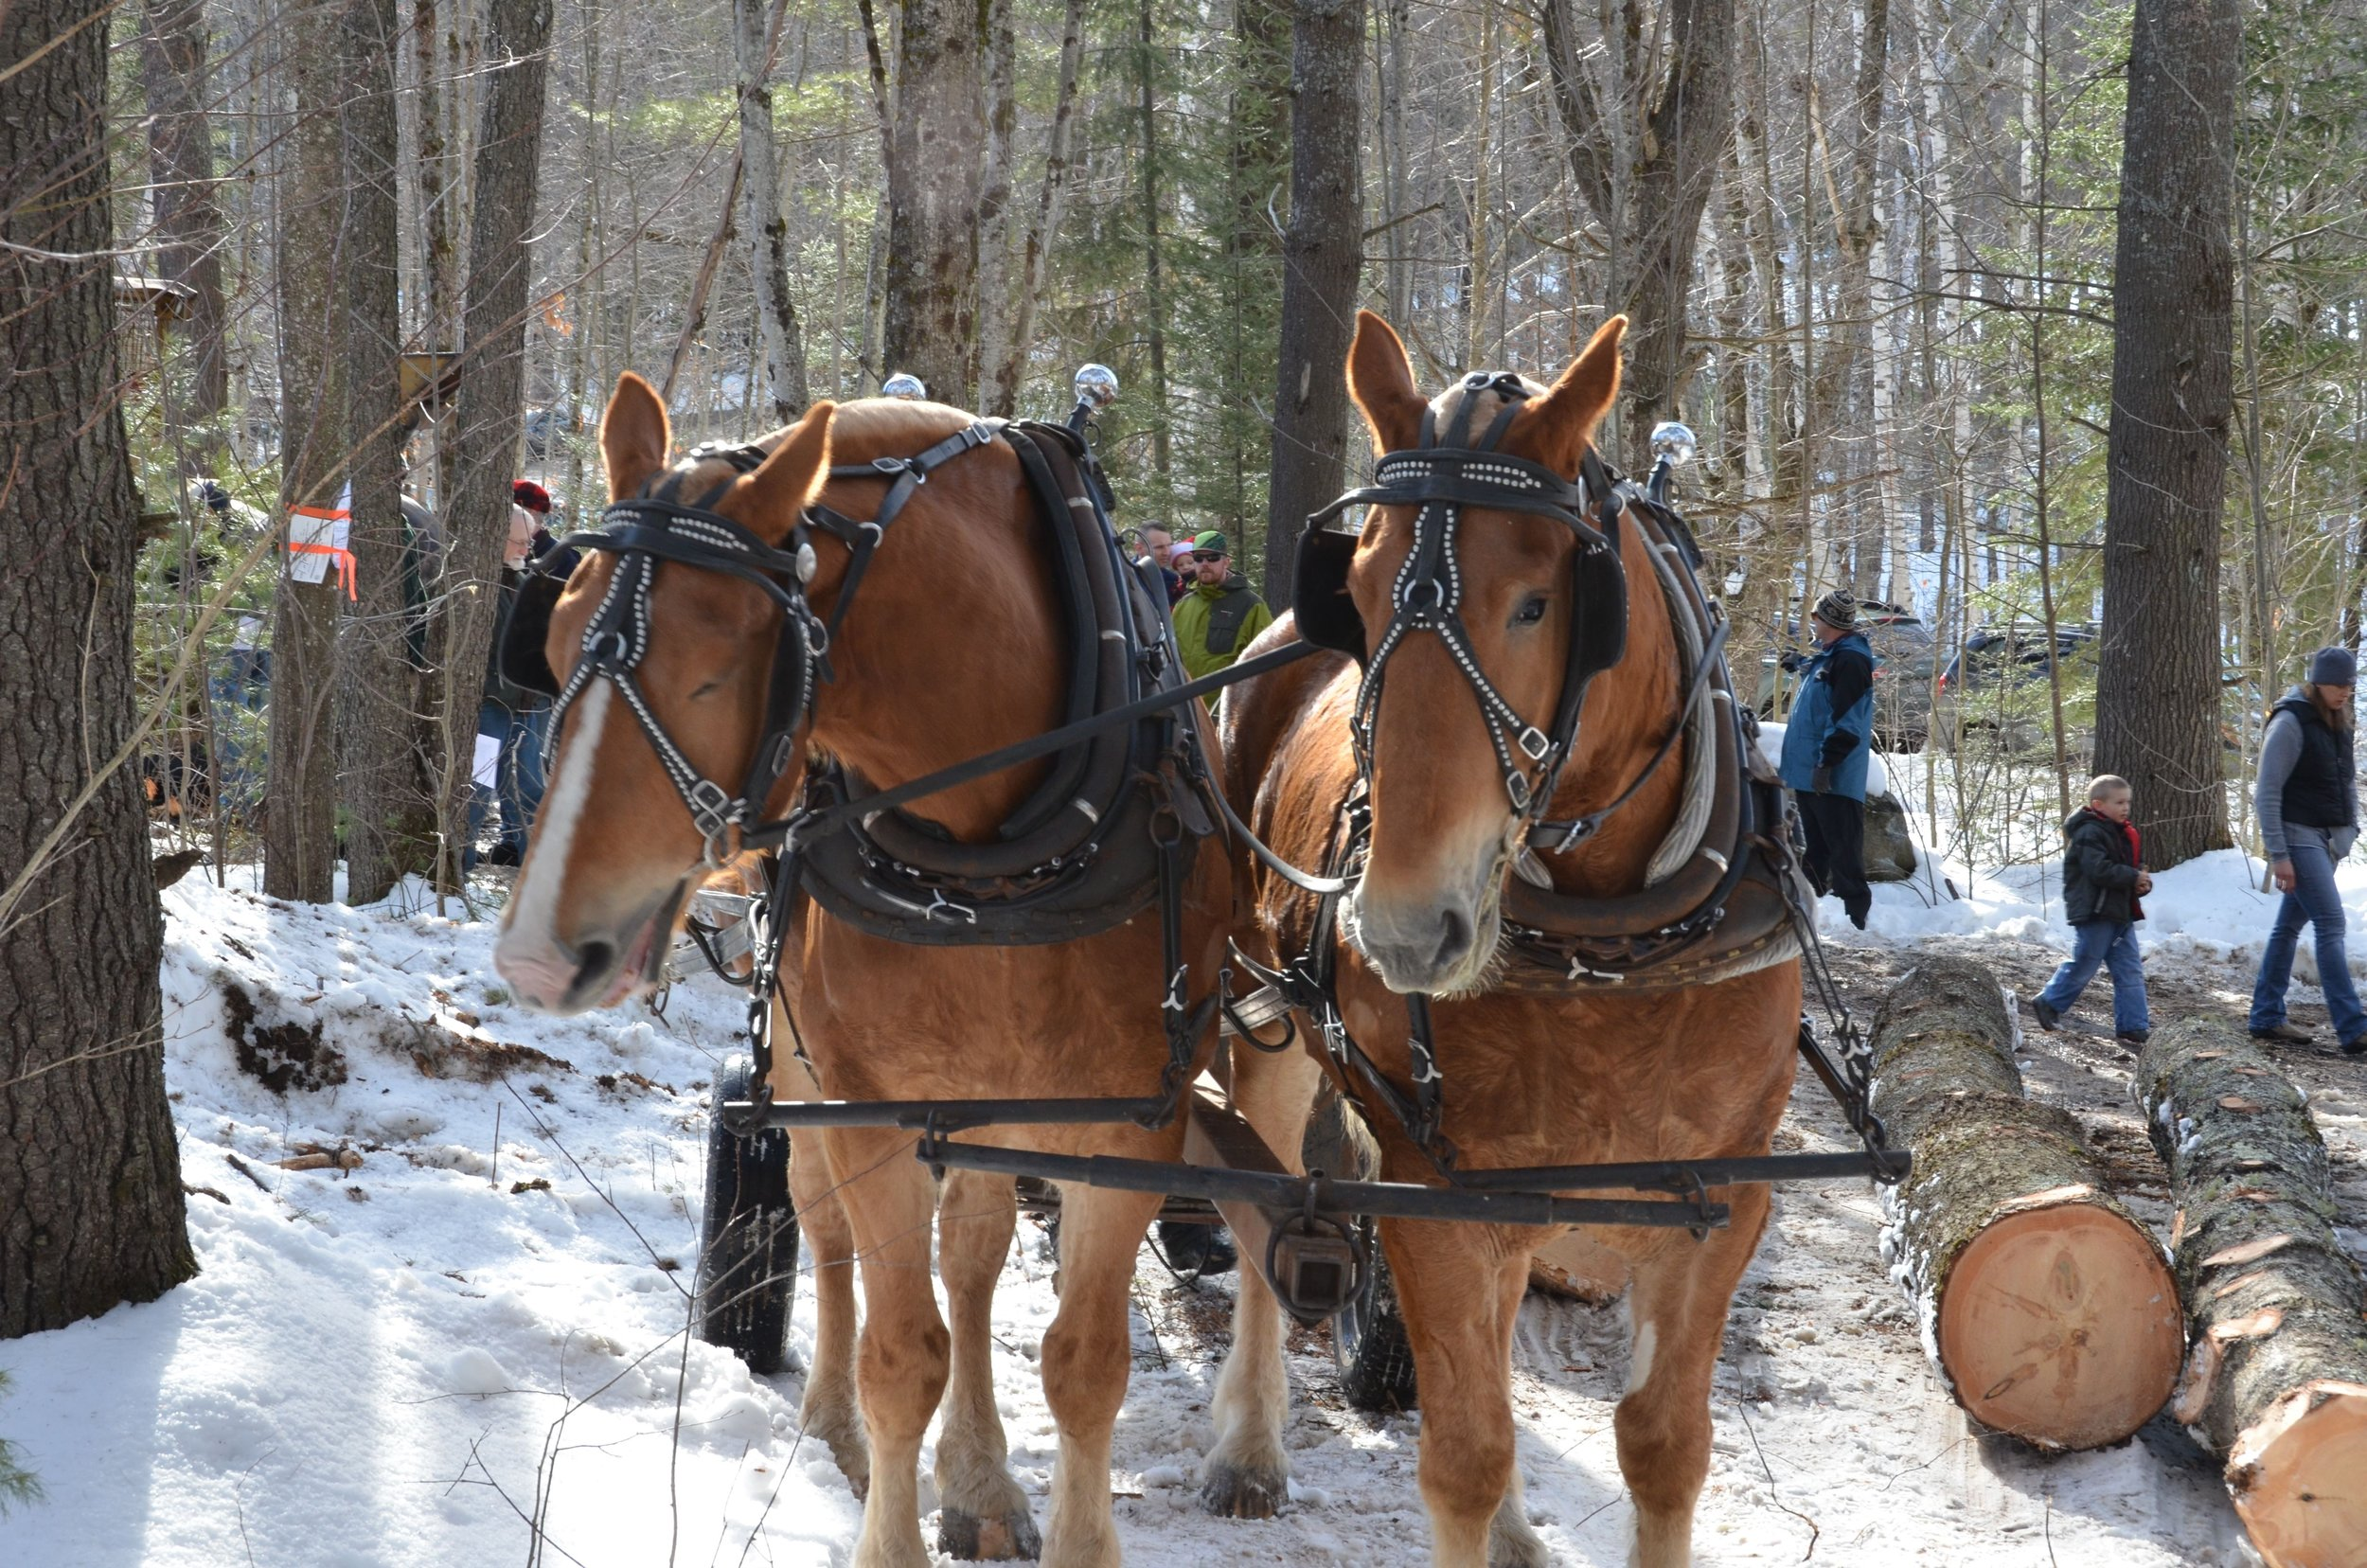 ACT demonstrated logging with horses as part of our winter 2014 timber harvest at the Foss Forest in Sugar Hill. The harvest was planned with birds in mind.